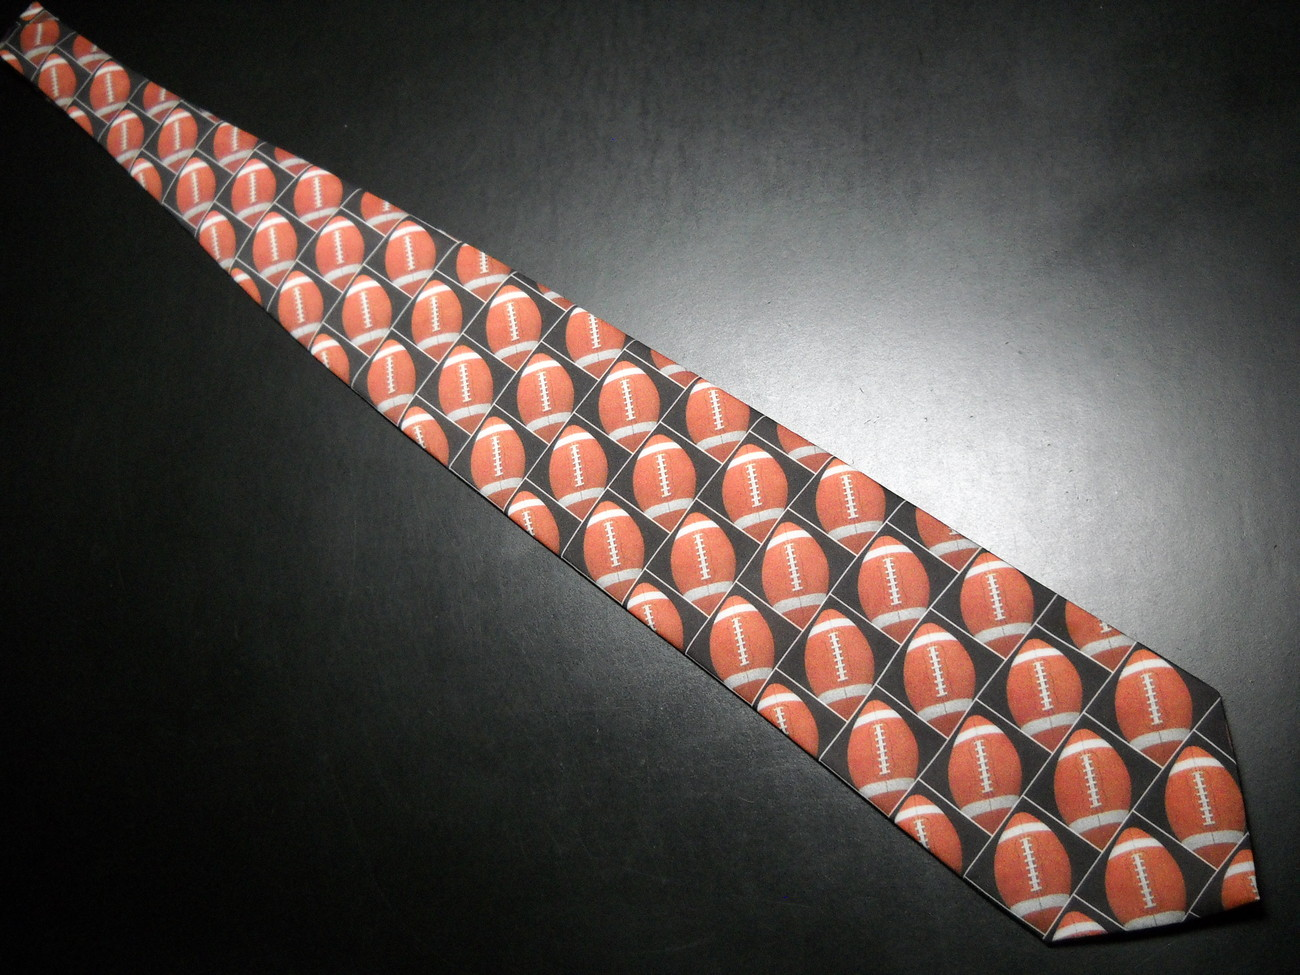 Ralph Marlin Neck Tie Son Of Just Balls Football 1996 Footballs Black Background